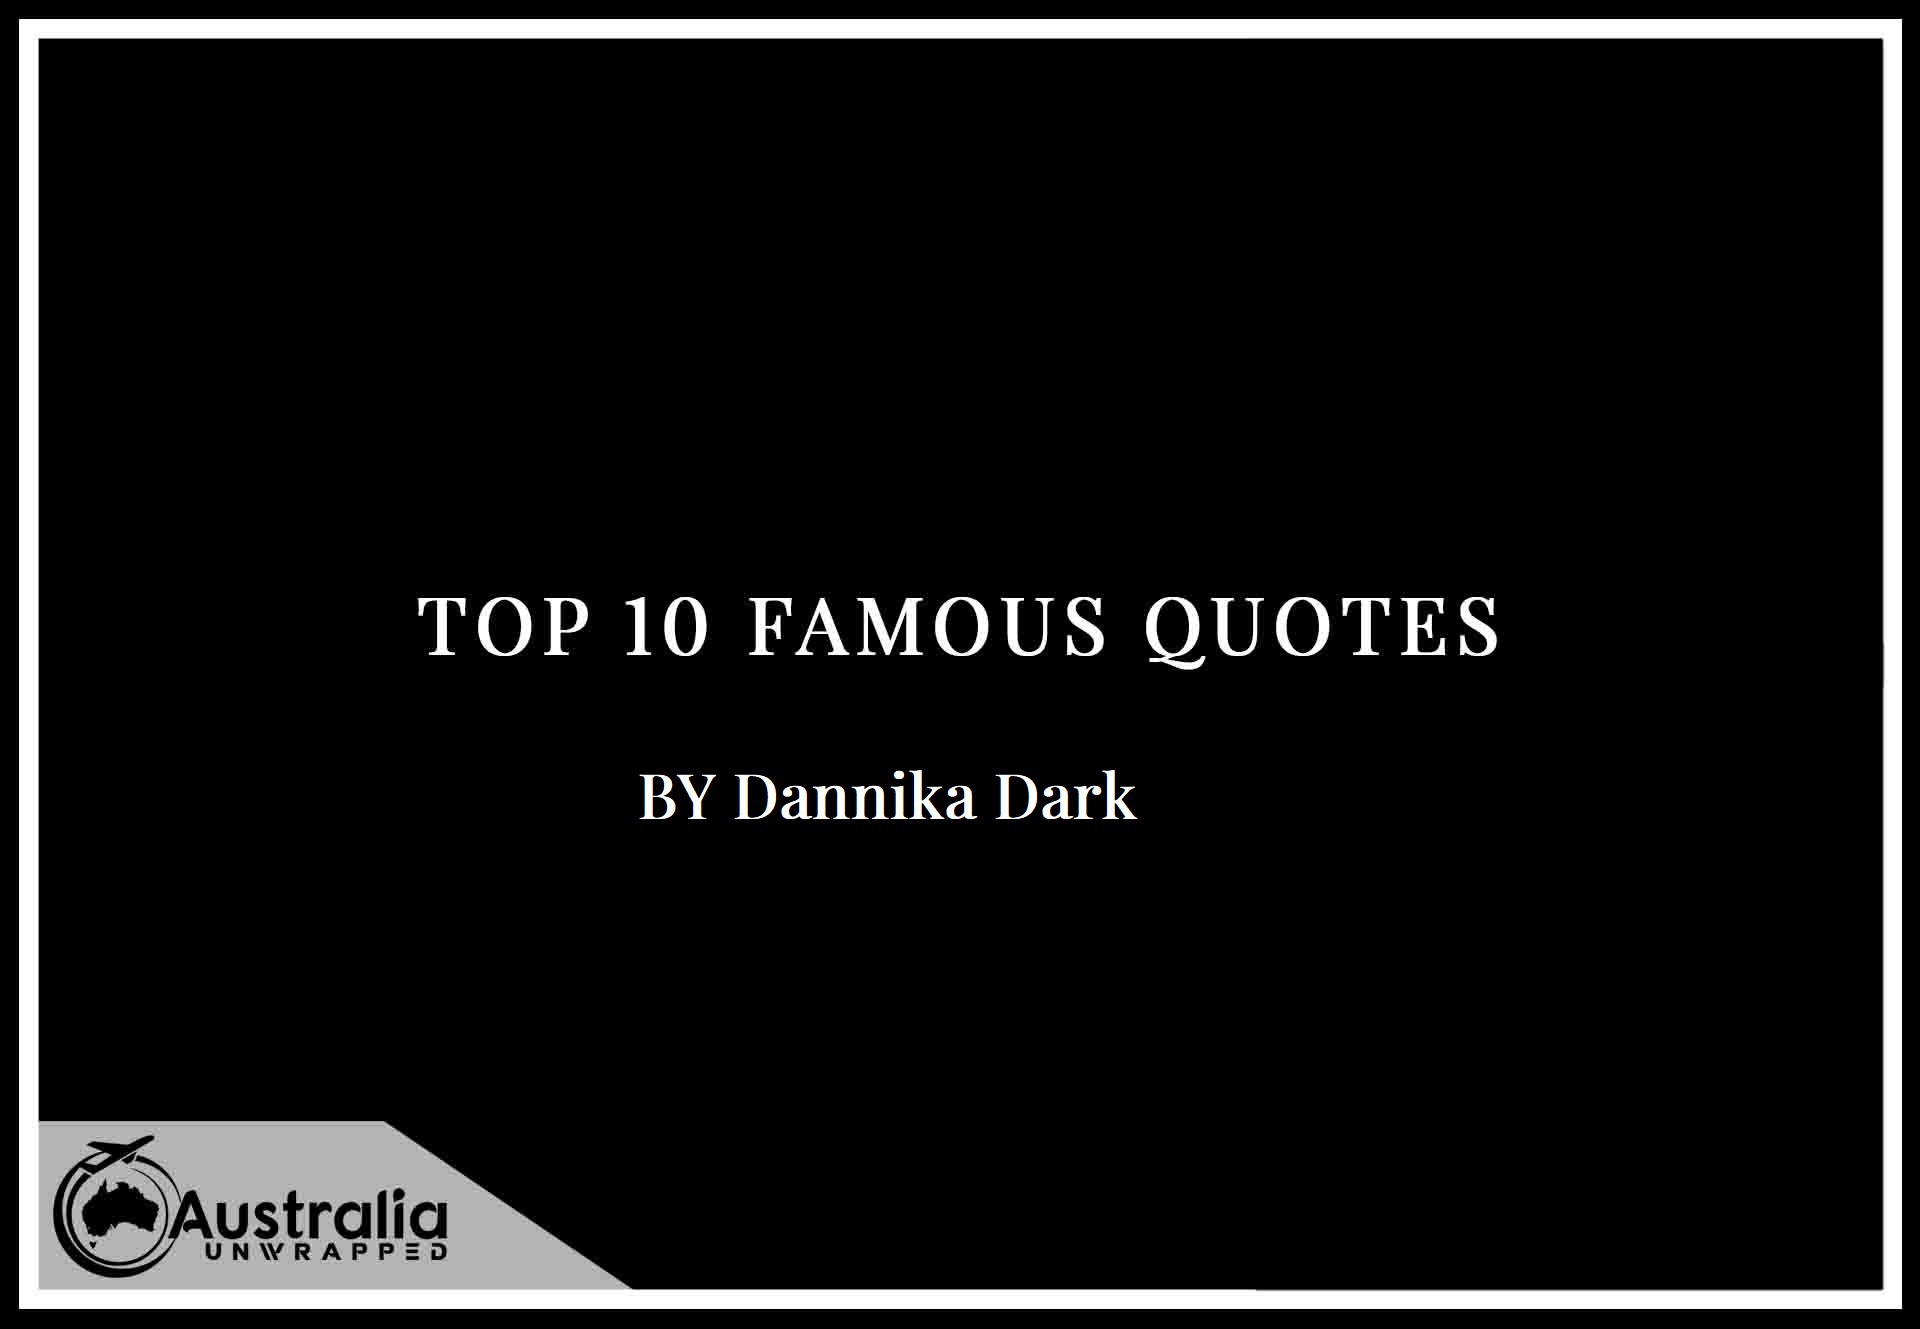 Top 10 Famous Quotes by Author Dannika Dark